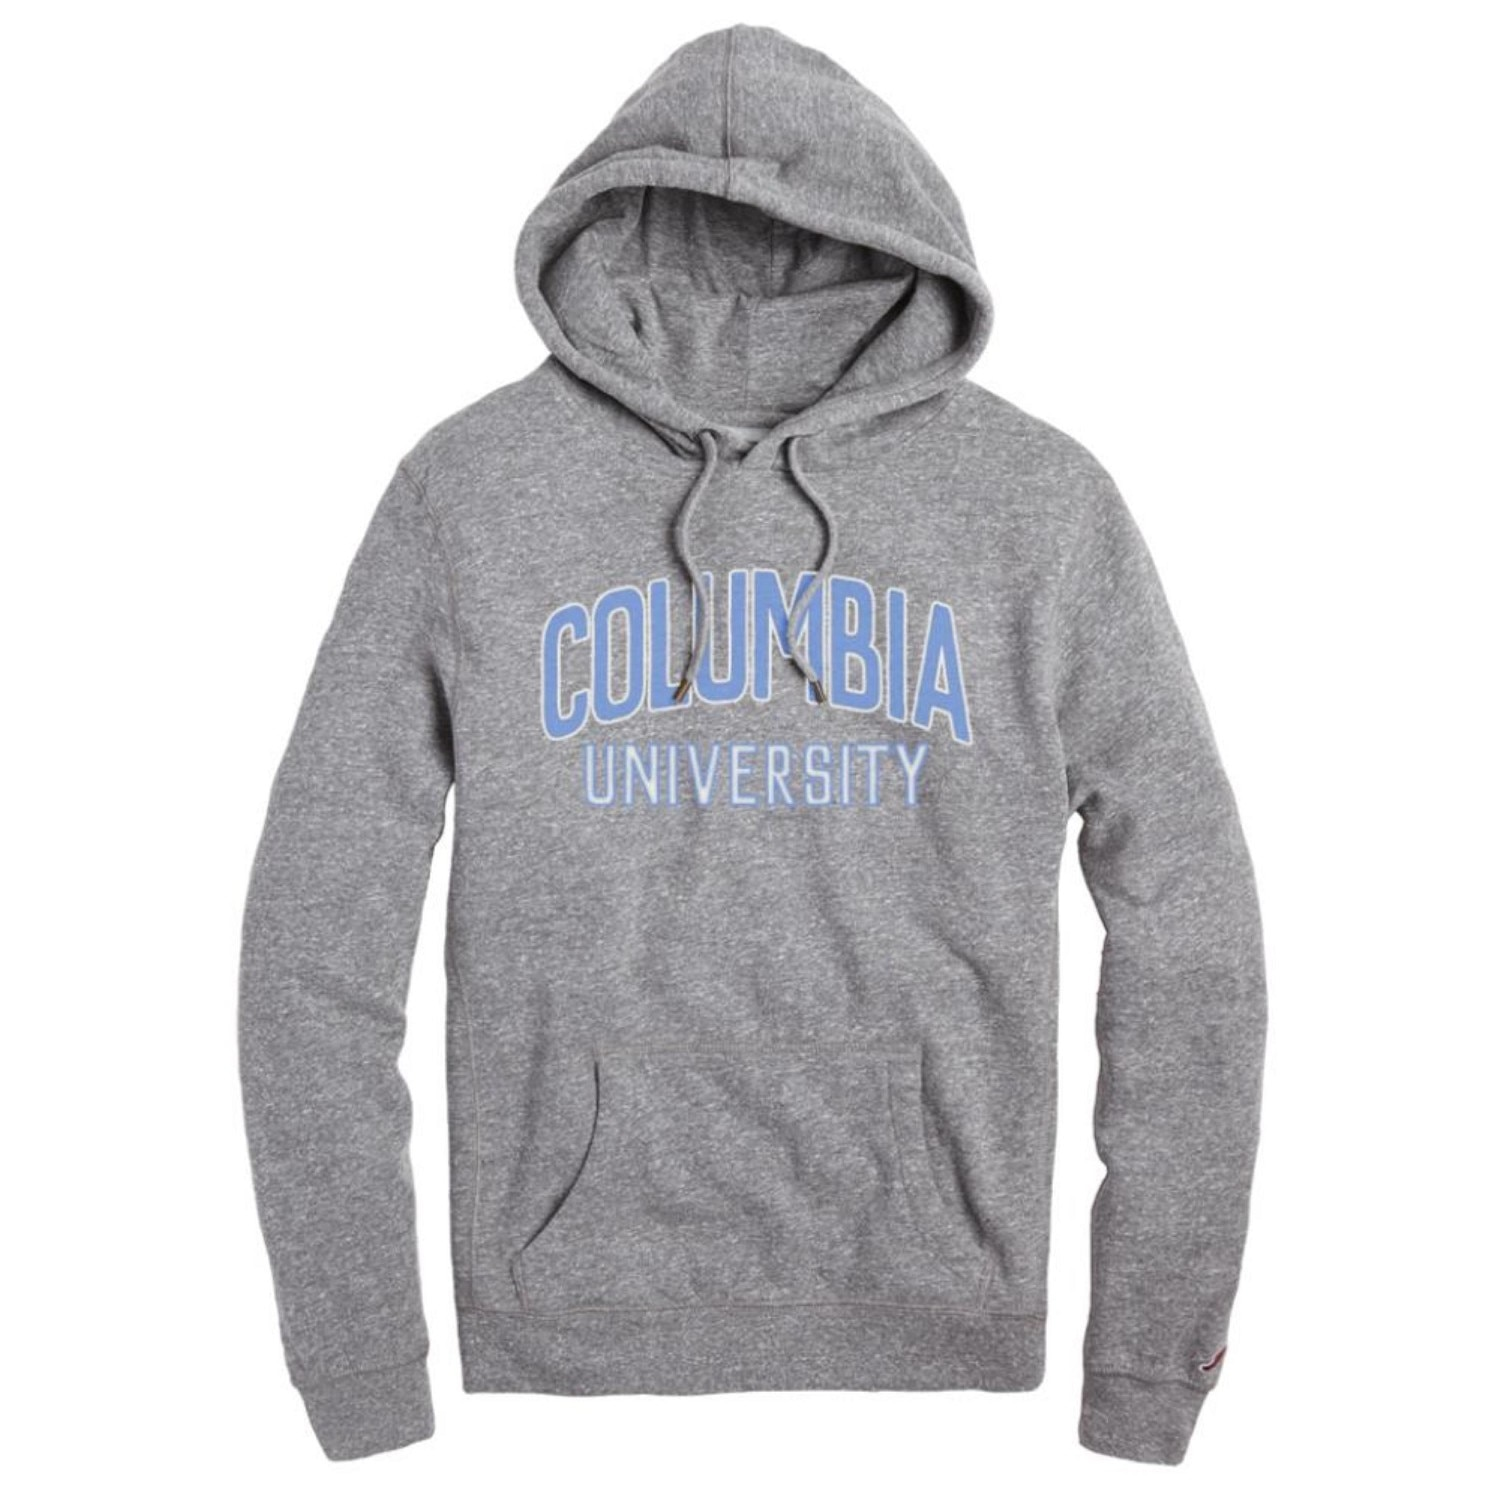 Columbia University League Heritage Triblend Pullover Hoodie